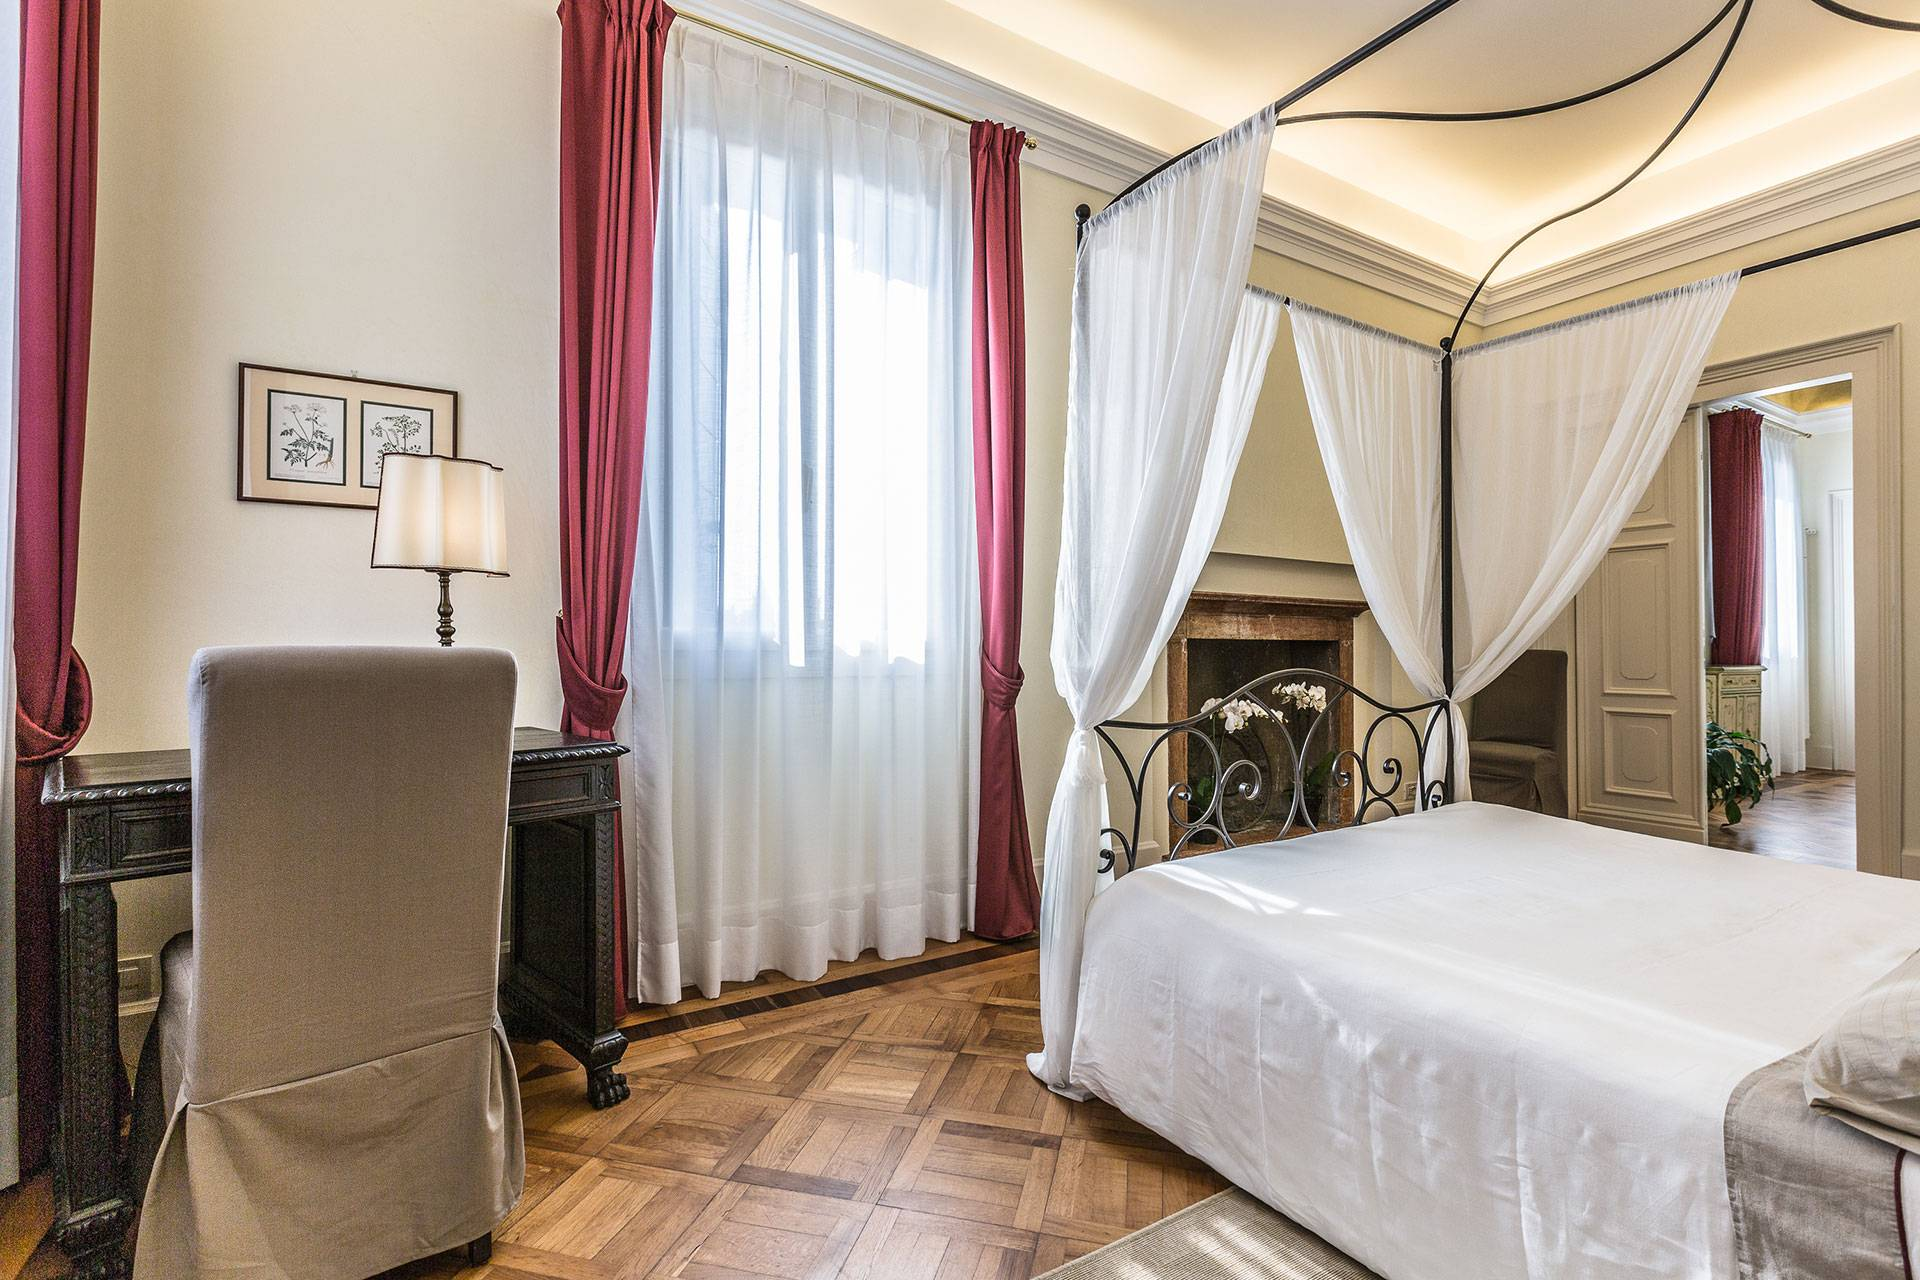 the master bedroom boasts a canopied bed dressed with nice linen